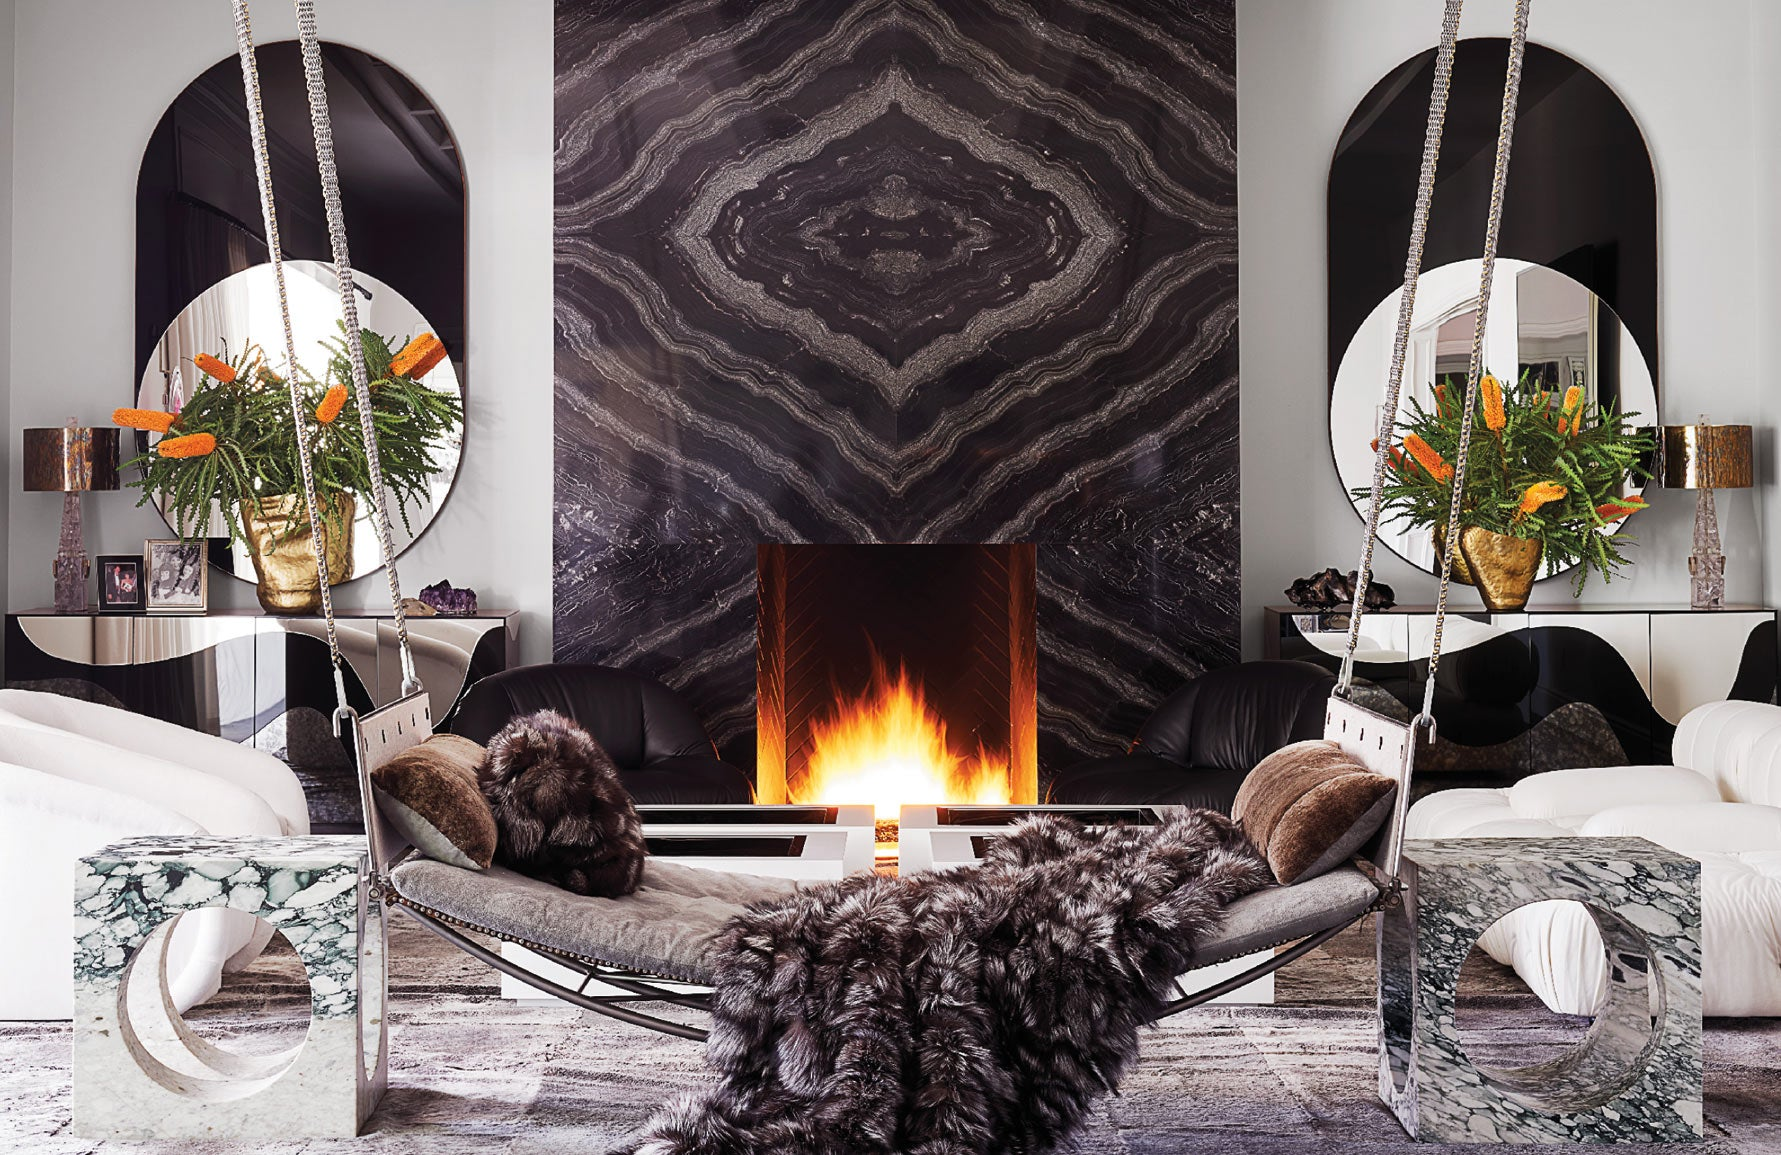 Kylie Jenner home   Martyn Lawrence Bullard   Celebrity interior designer   Grey interiors   Read more in The Luxurist at LuxDeco.com